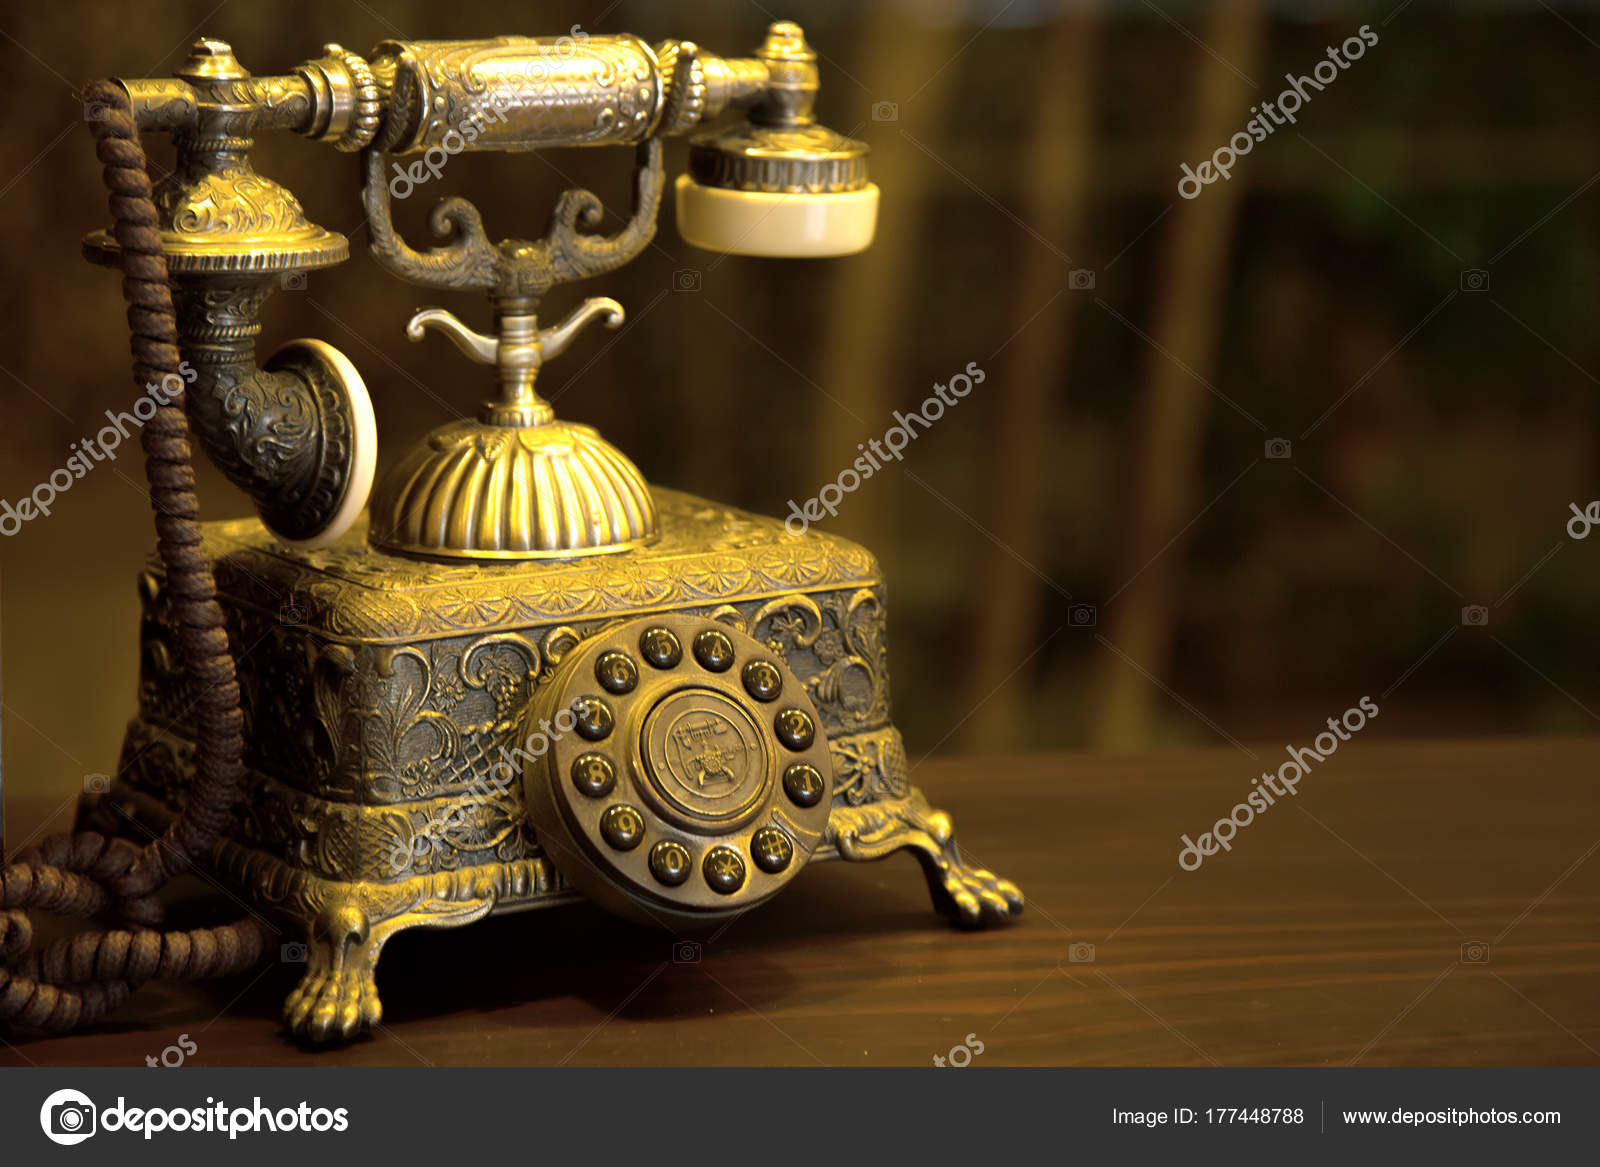 hight resolution of old phone antique phone table stock photo